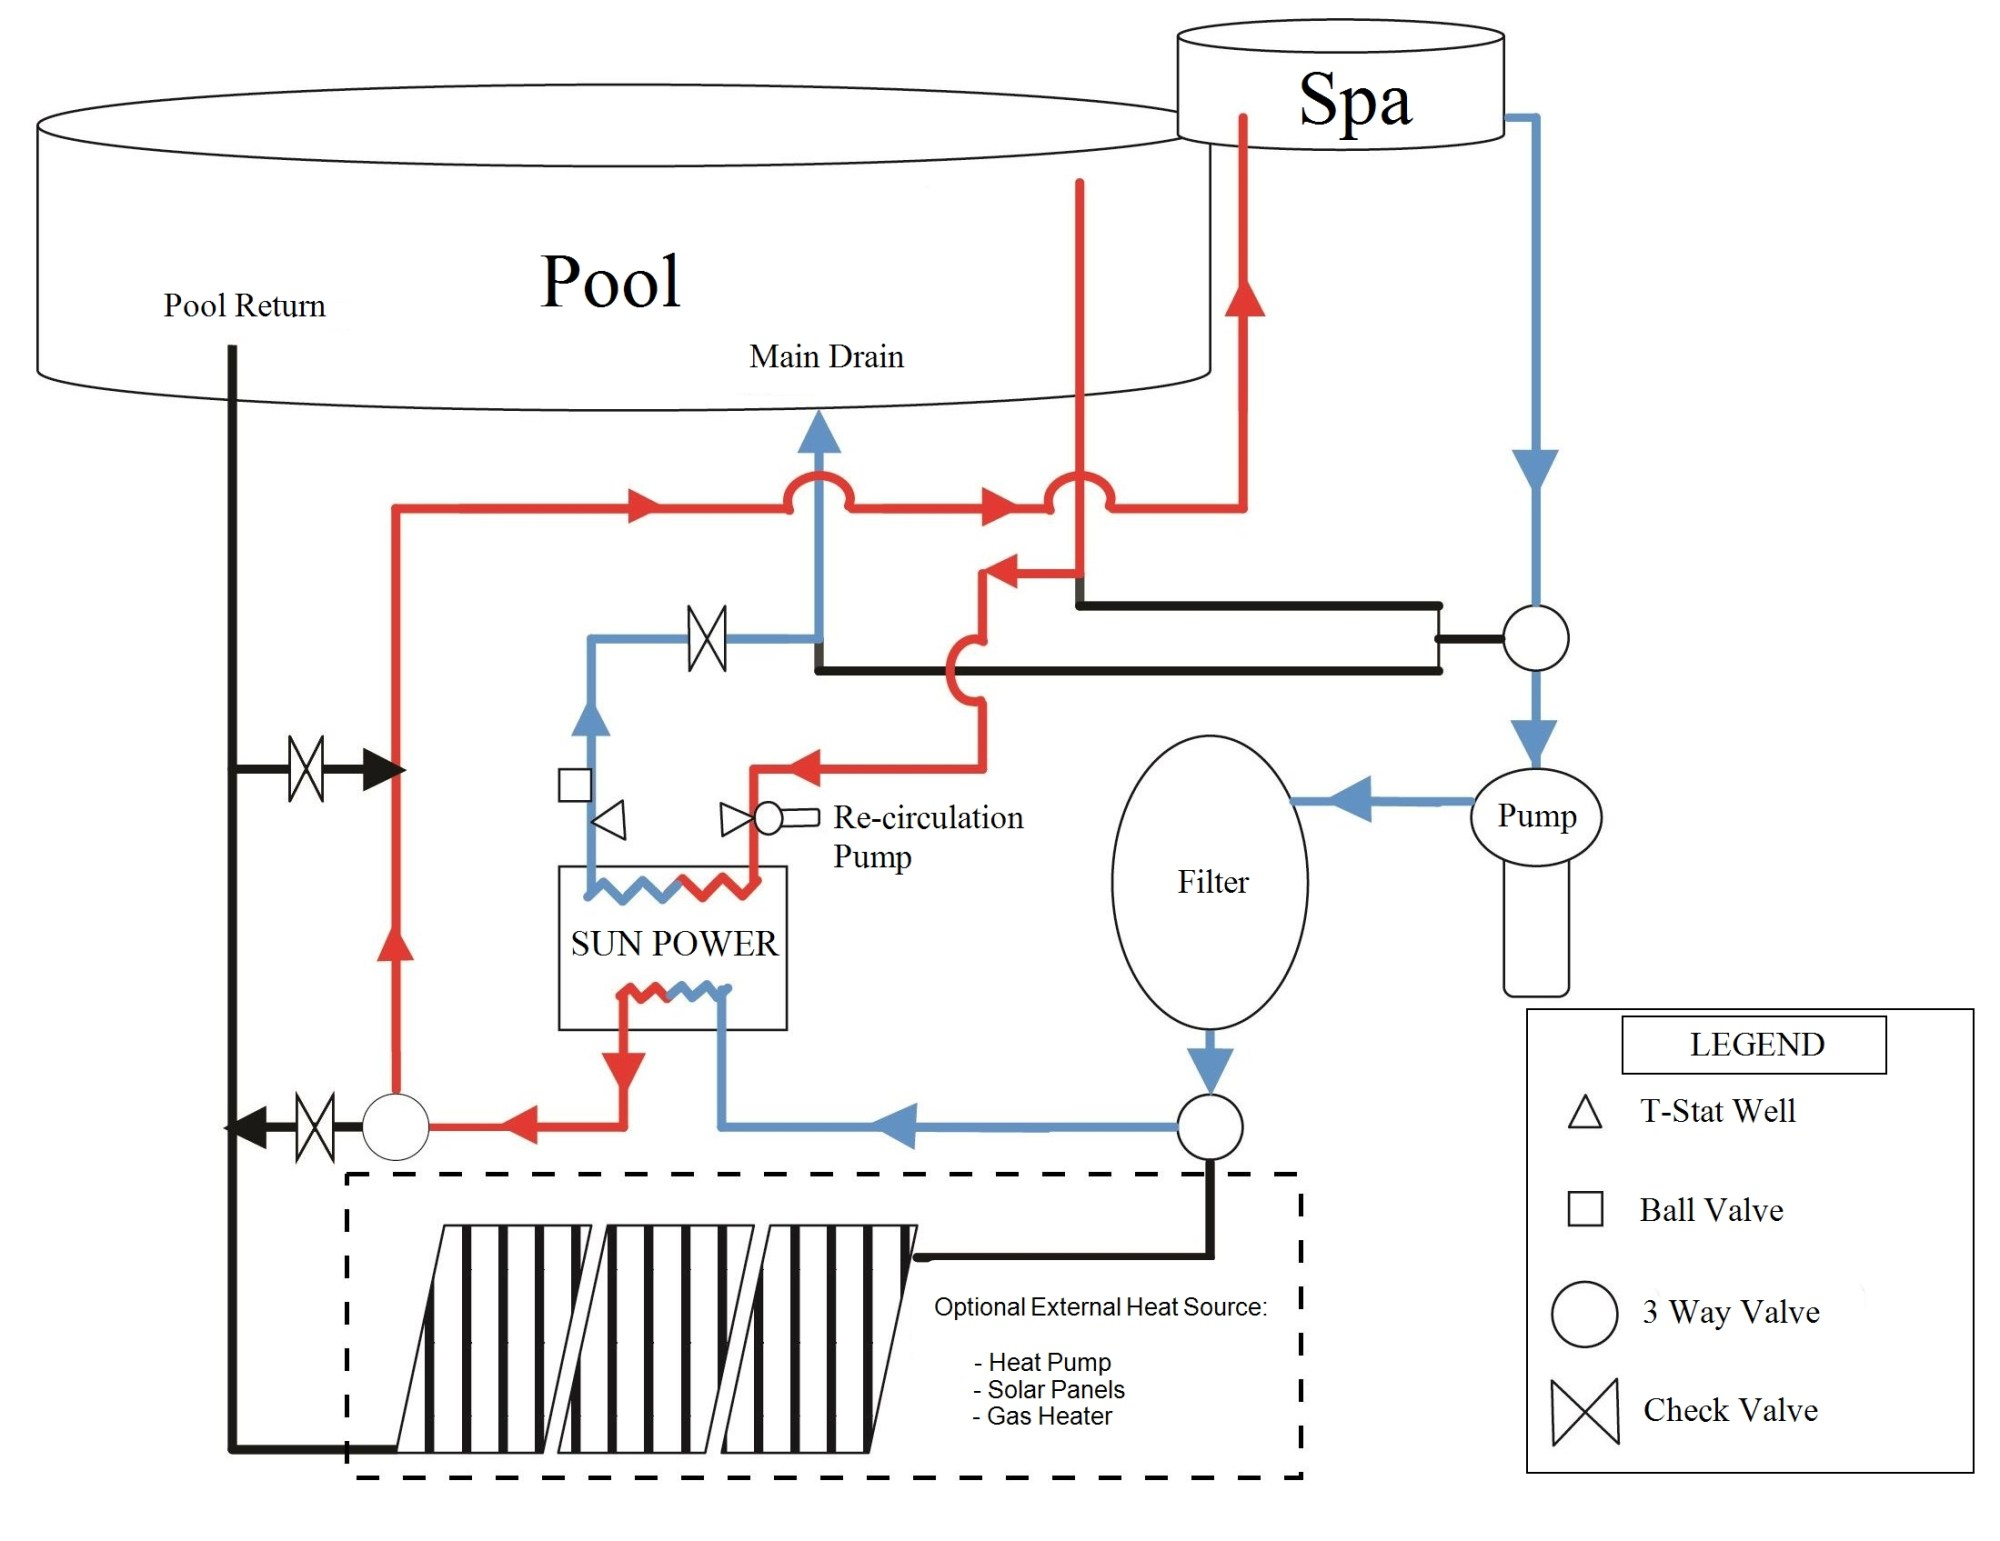 hight resolution of aquacal wiring diagram wiring diagram aquacal wiring diagram aquacal wiring diagram